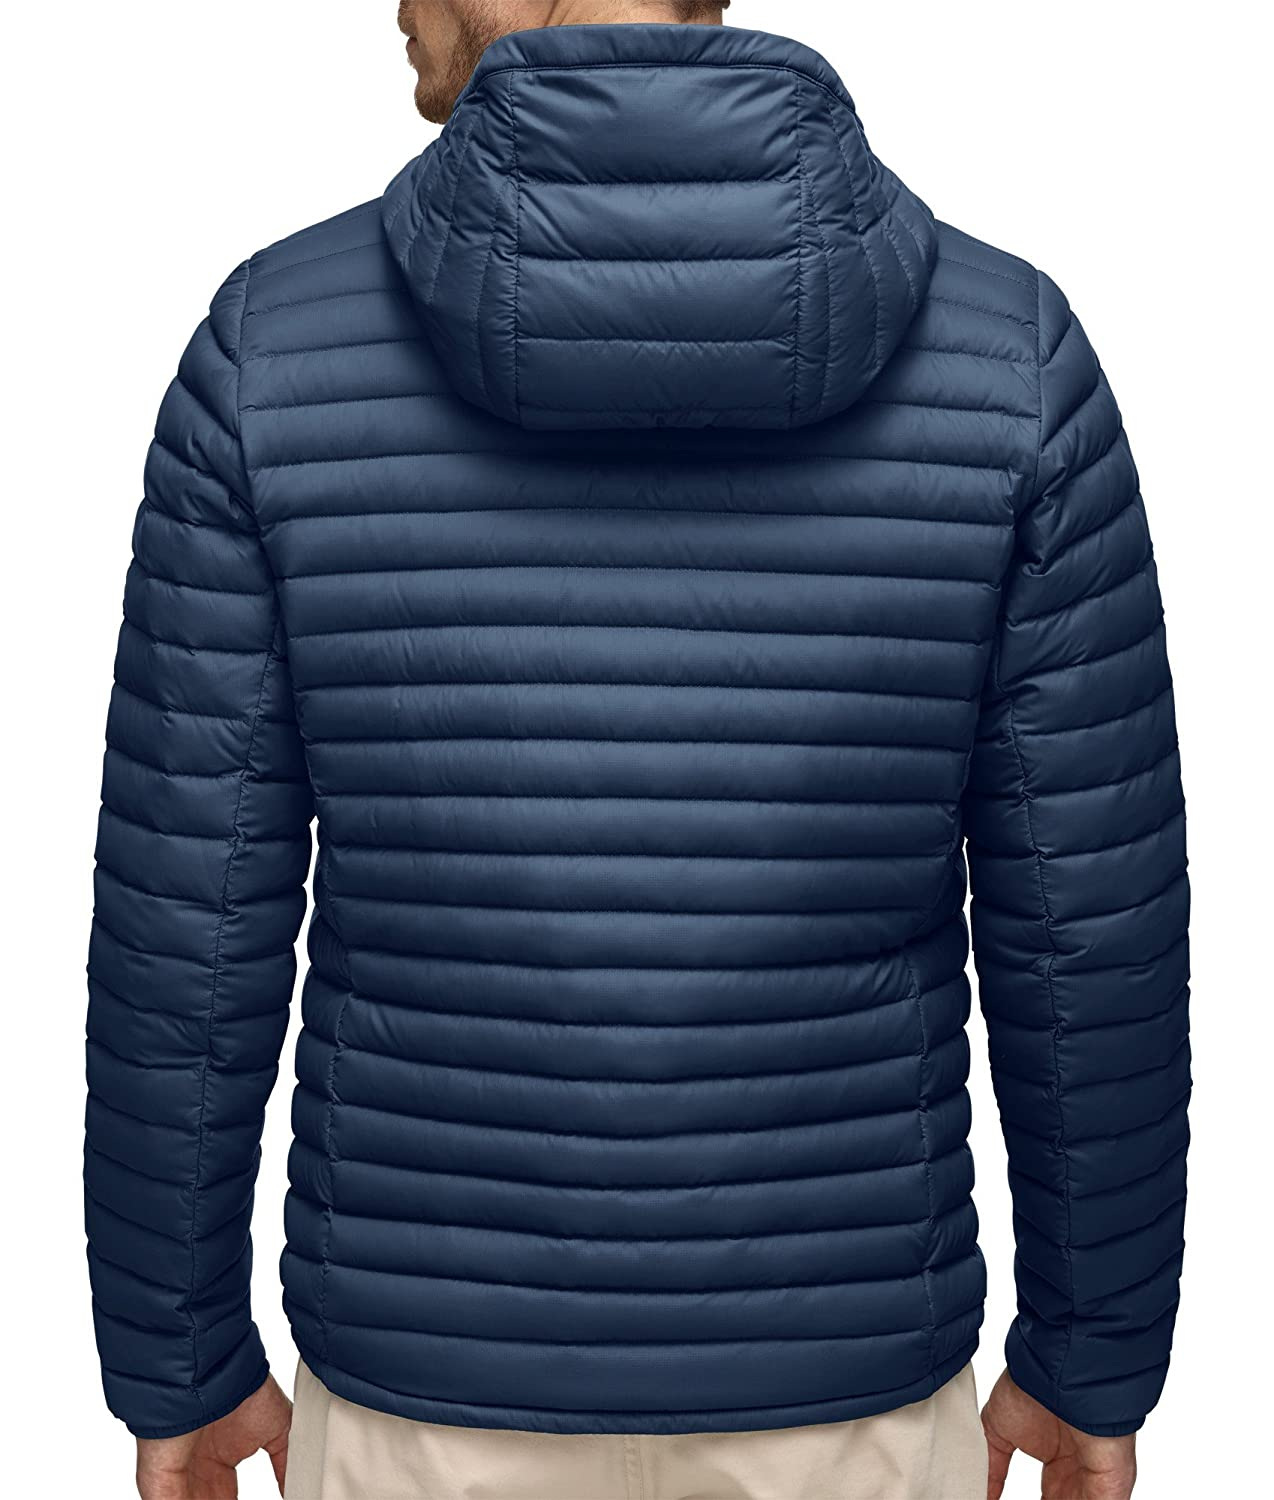 17db5def61f5 Kjus MEN Blackcomb Hooded Down Jacket - Deep Sea - 54 - Mens lightweight  breathable hooded down jacket  Amazon.co.uk  Sports   Outdoors